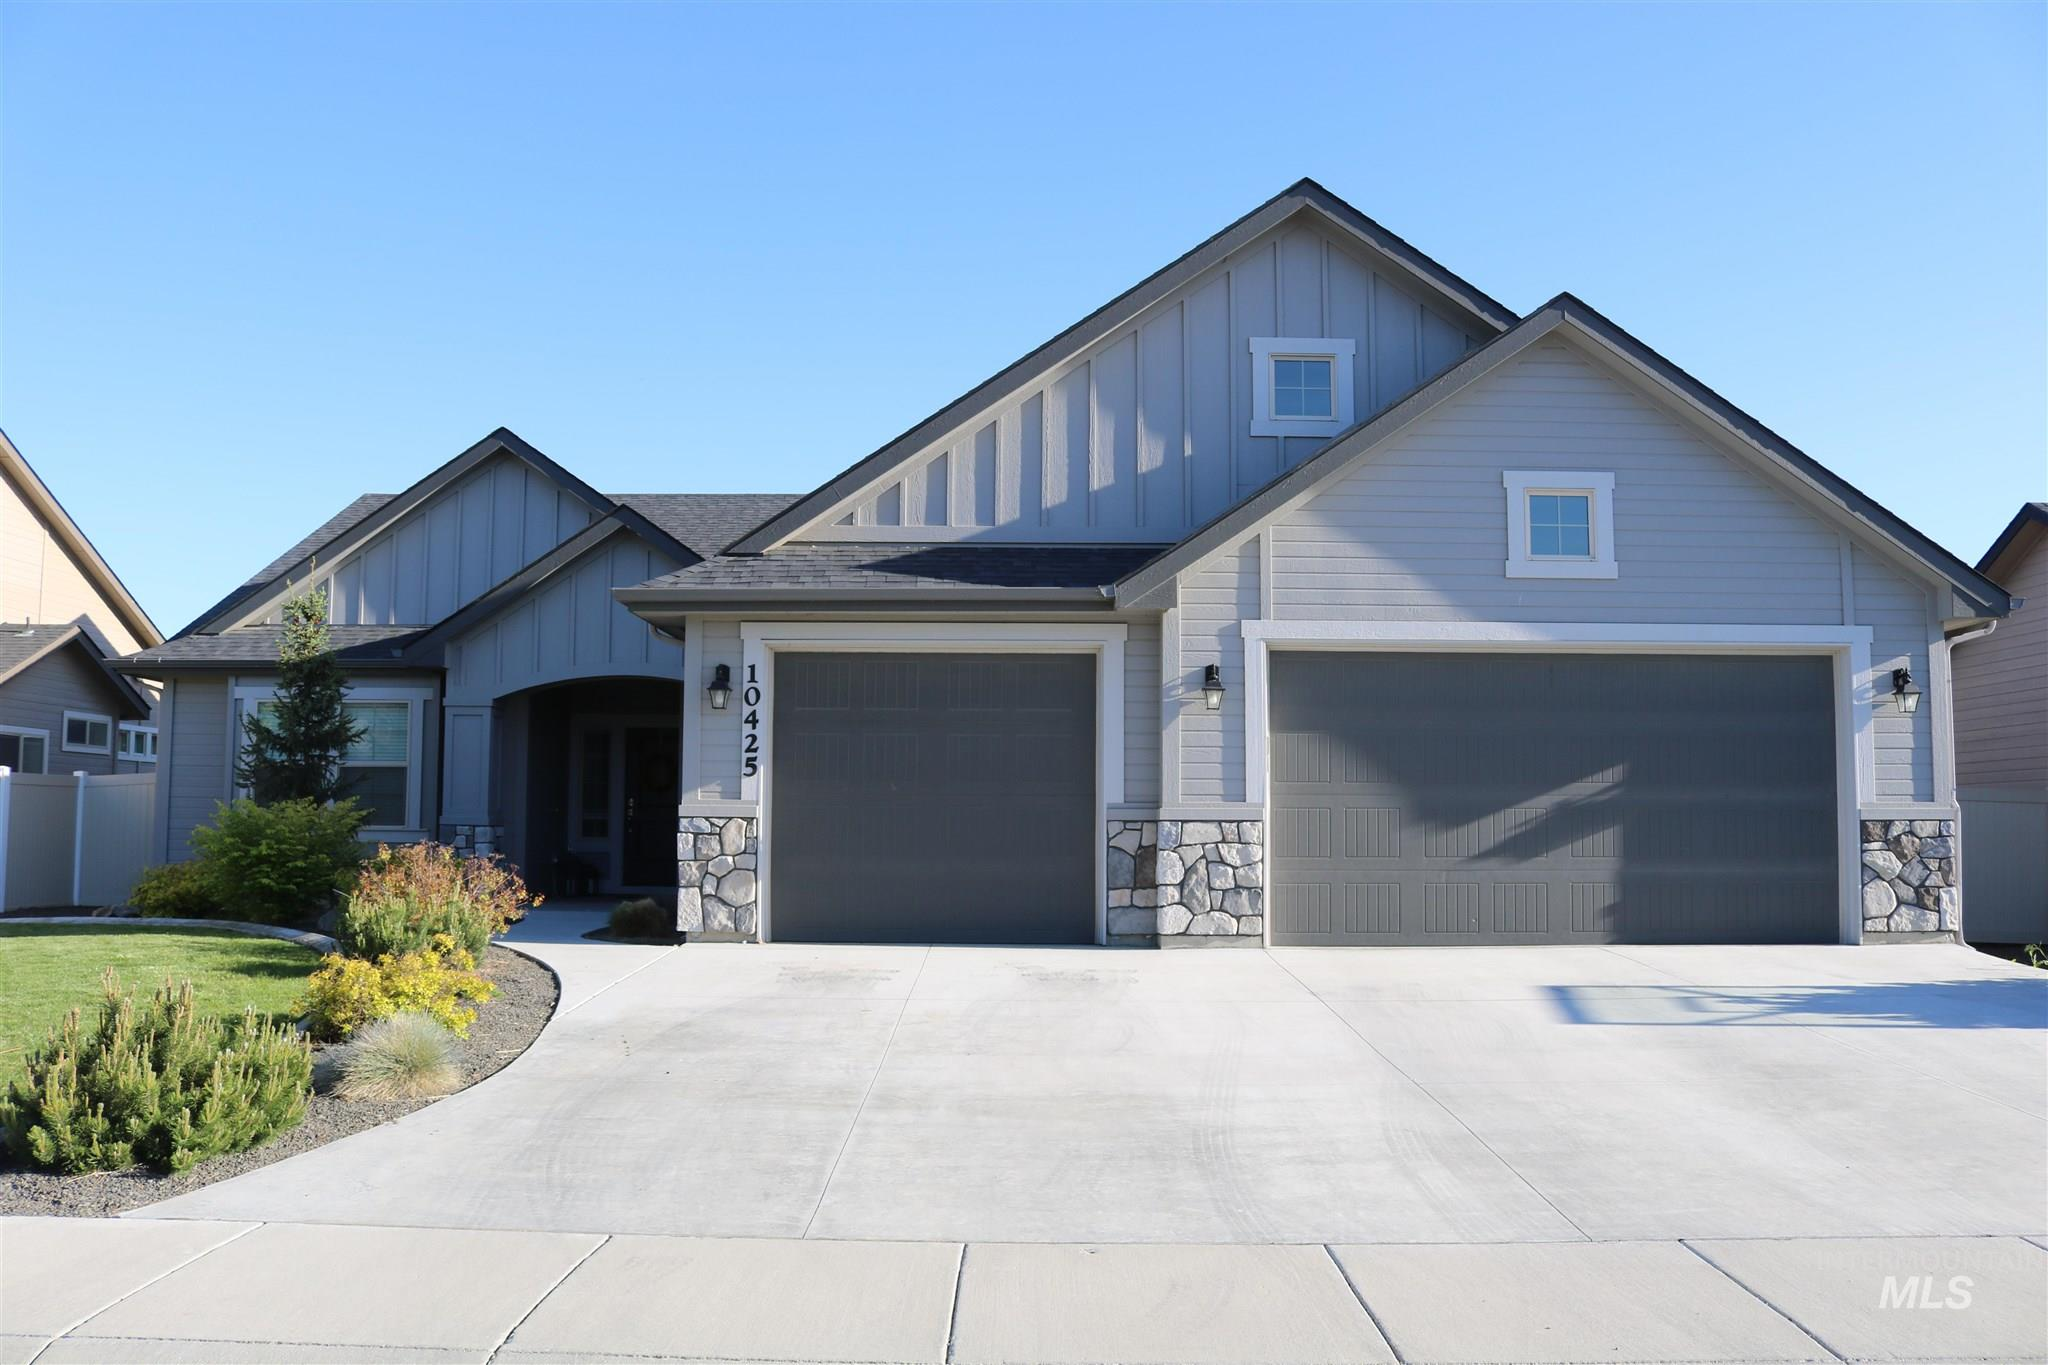 10425 Fallow Field St Property Photo - Nampa, ID real estate listing